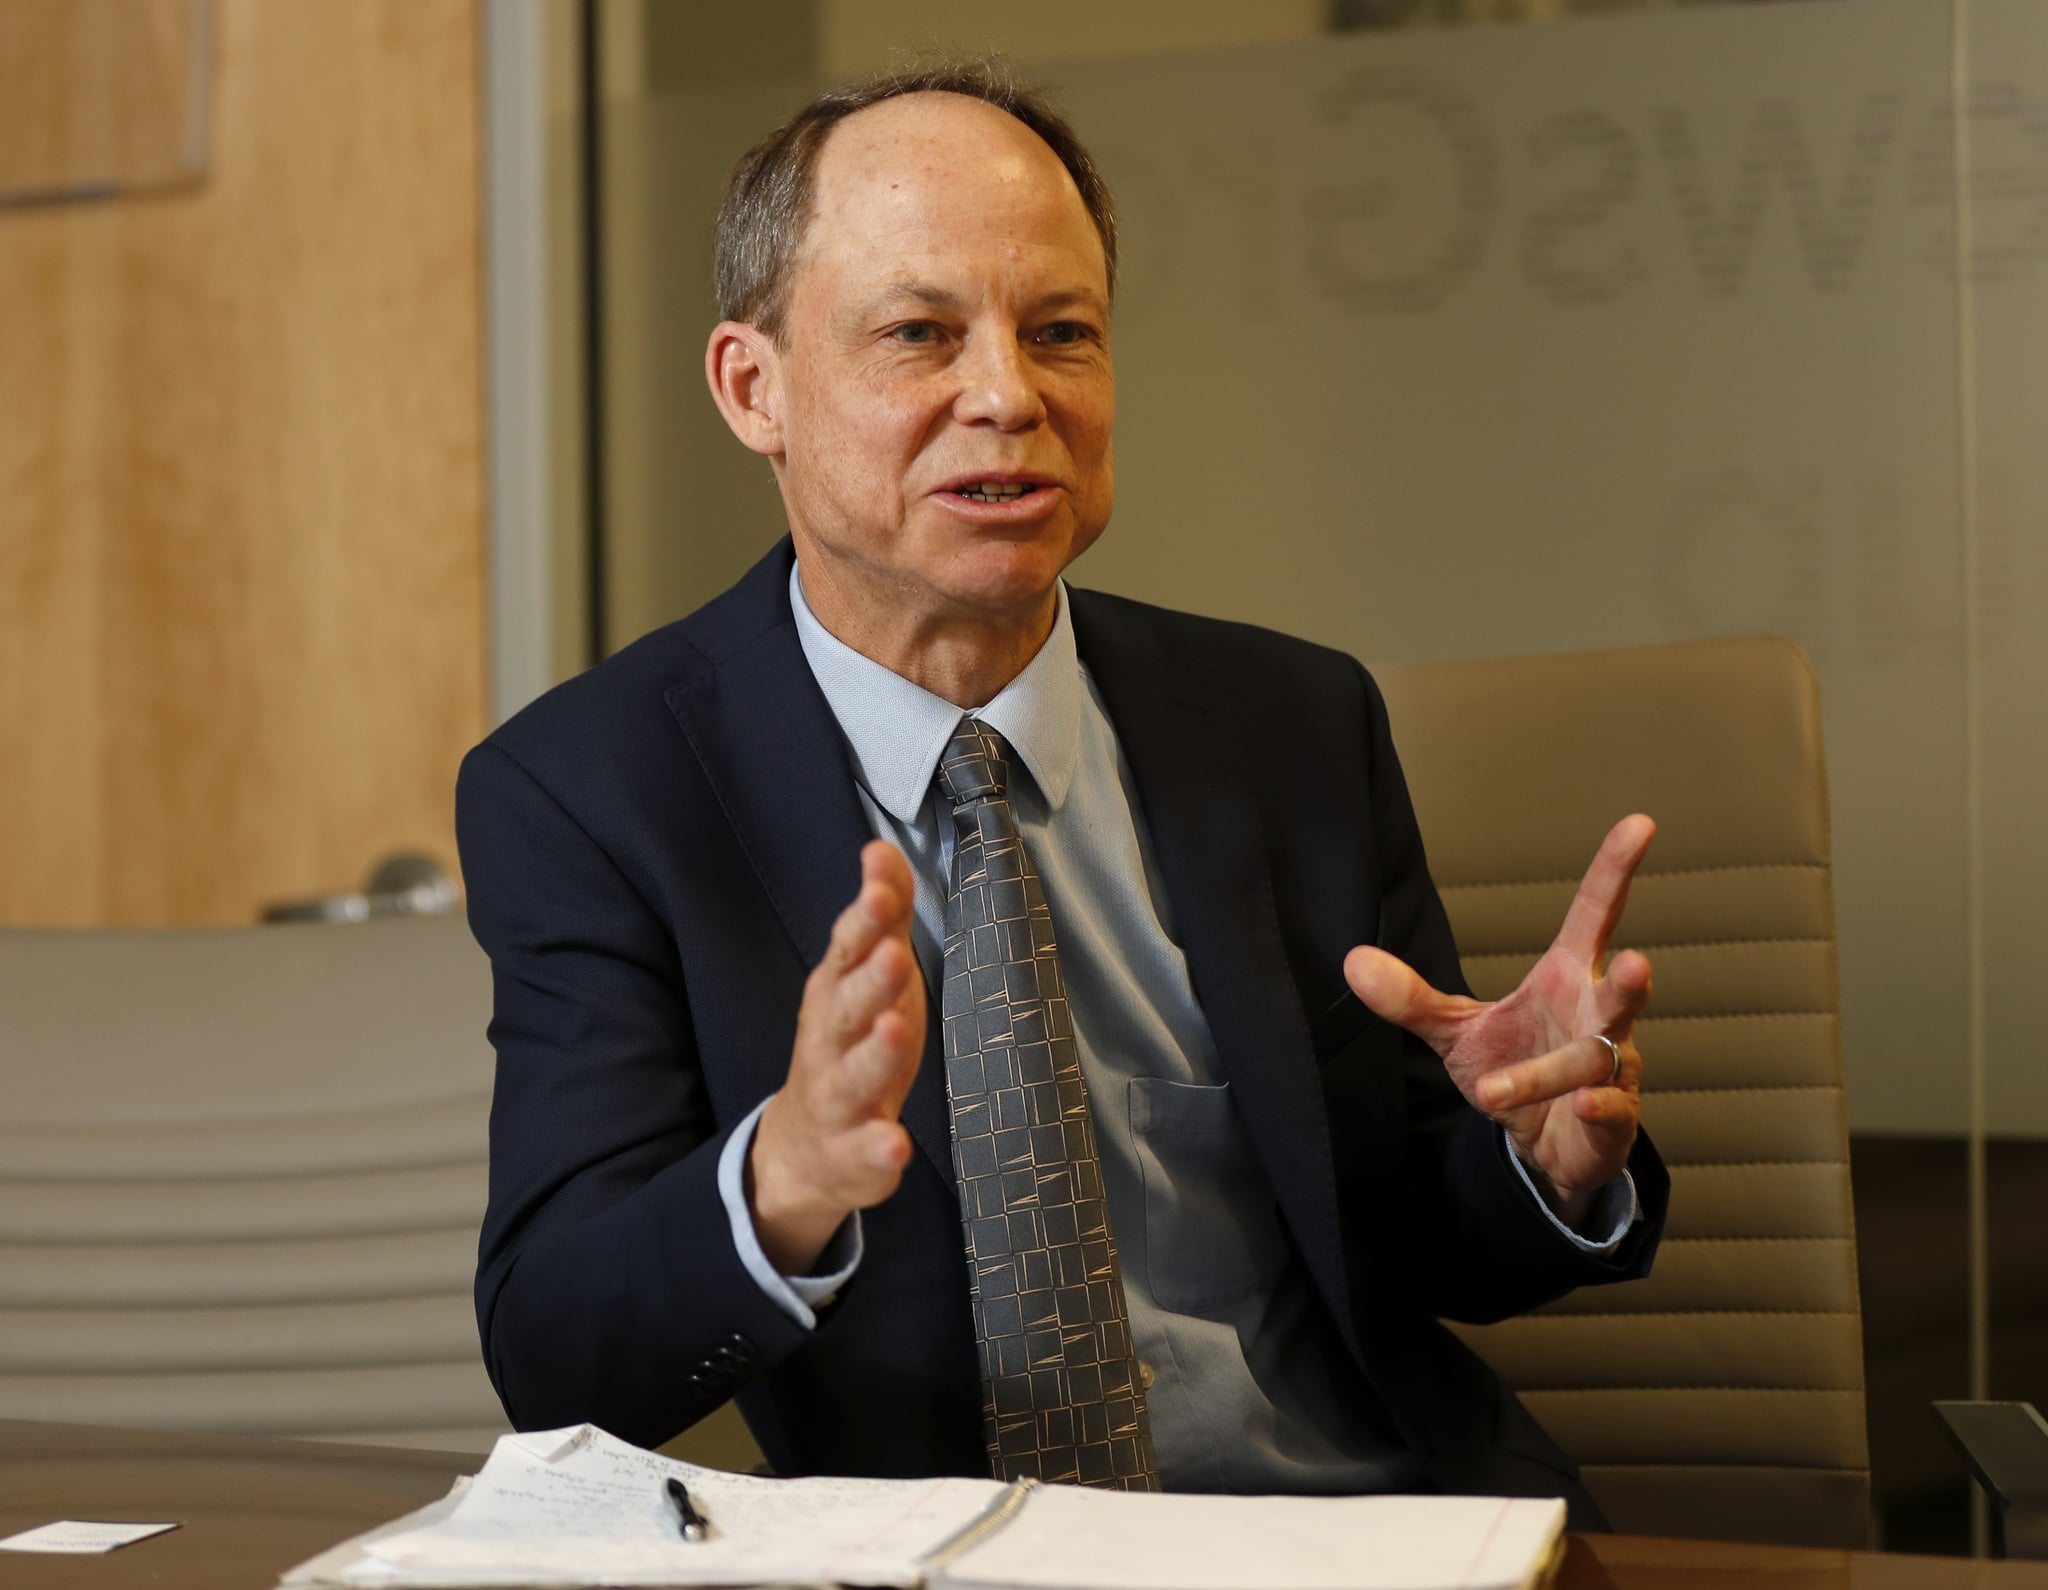 SAN JOSE, CA - APRIL 19: Santa Clara County Superior Court judge Aaron Persky speaks regarding the recall election against him with the editorial board of the Mercury News at the Mercury News offices in downtown San Jose, Calif., on Thursday, April 19, 2018. (Nhat V. Meyer/Bay Area News Group via Getty Images)